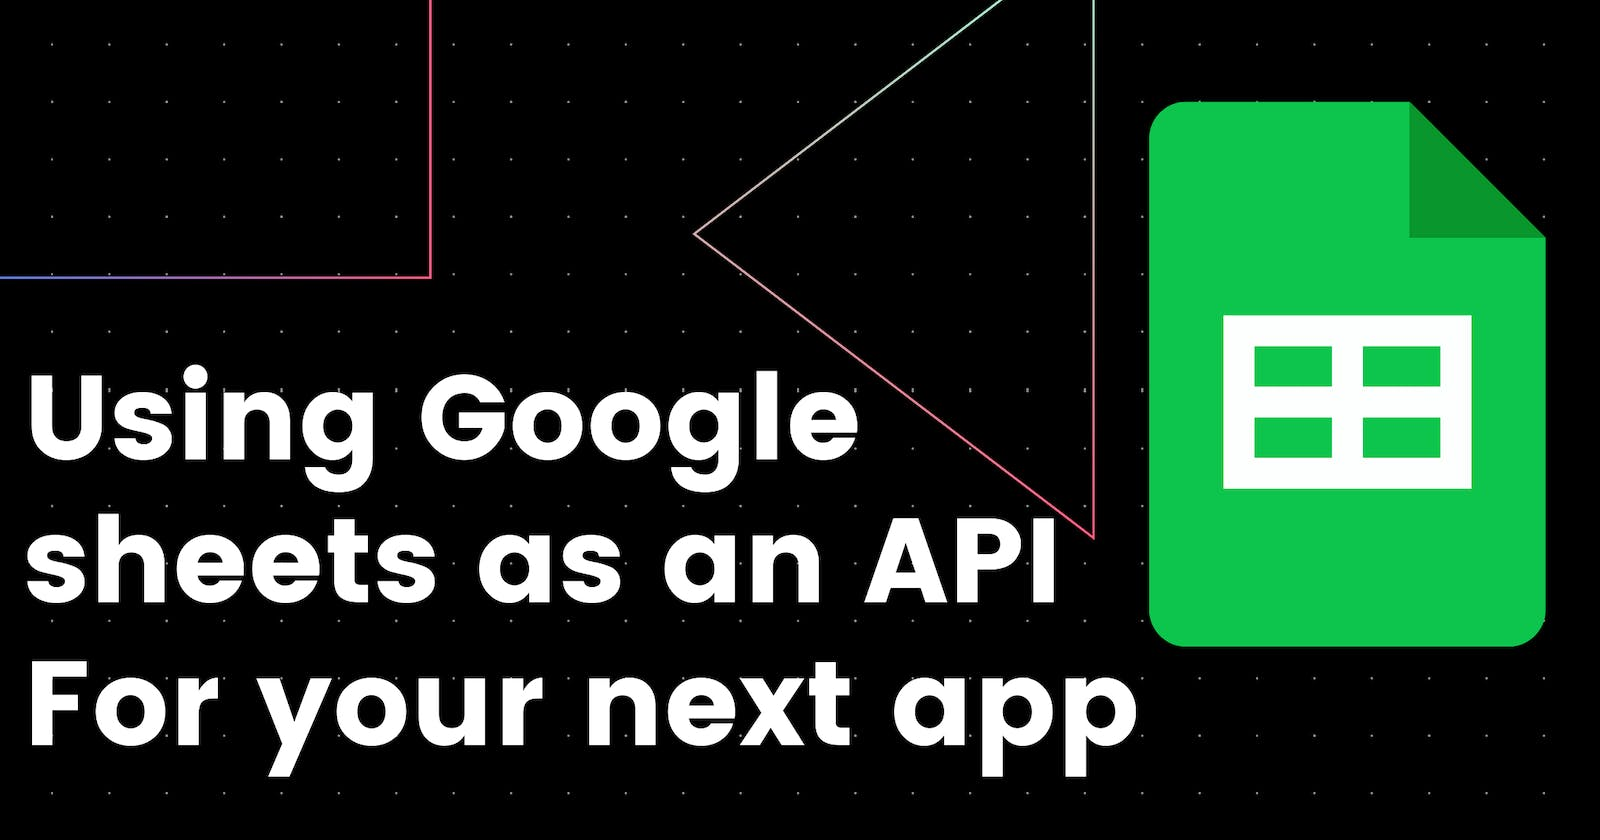 Using Google sheets as an API For your next app